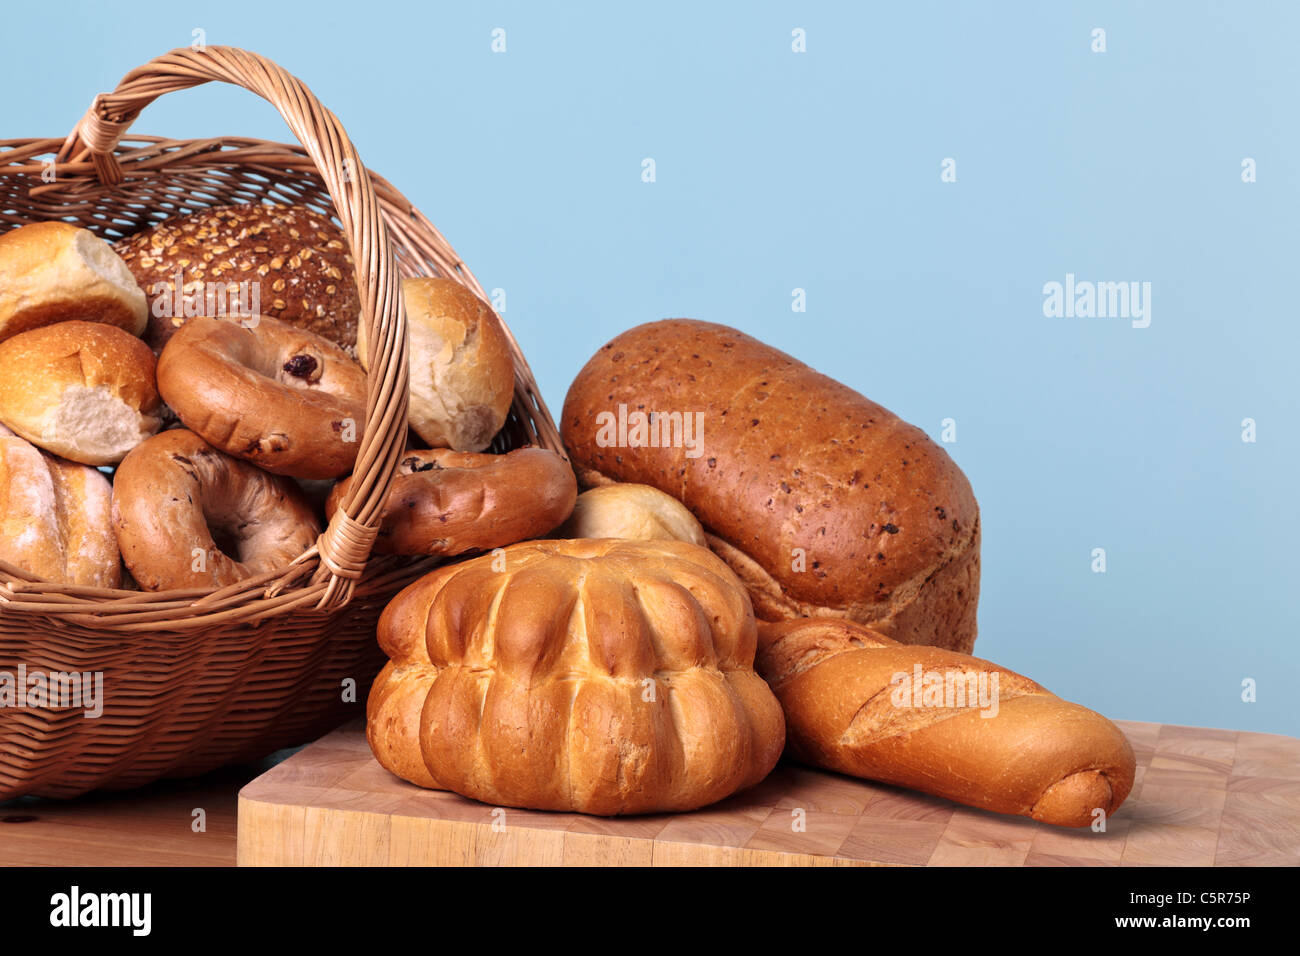 Photo of different types of bread spilling out from a basket. - Stock Image